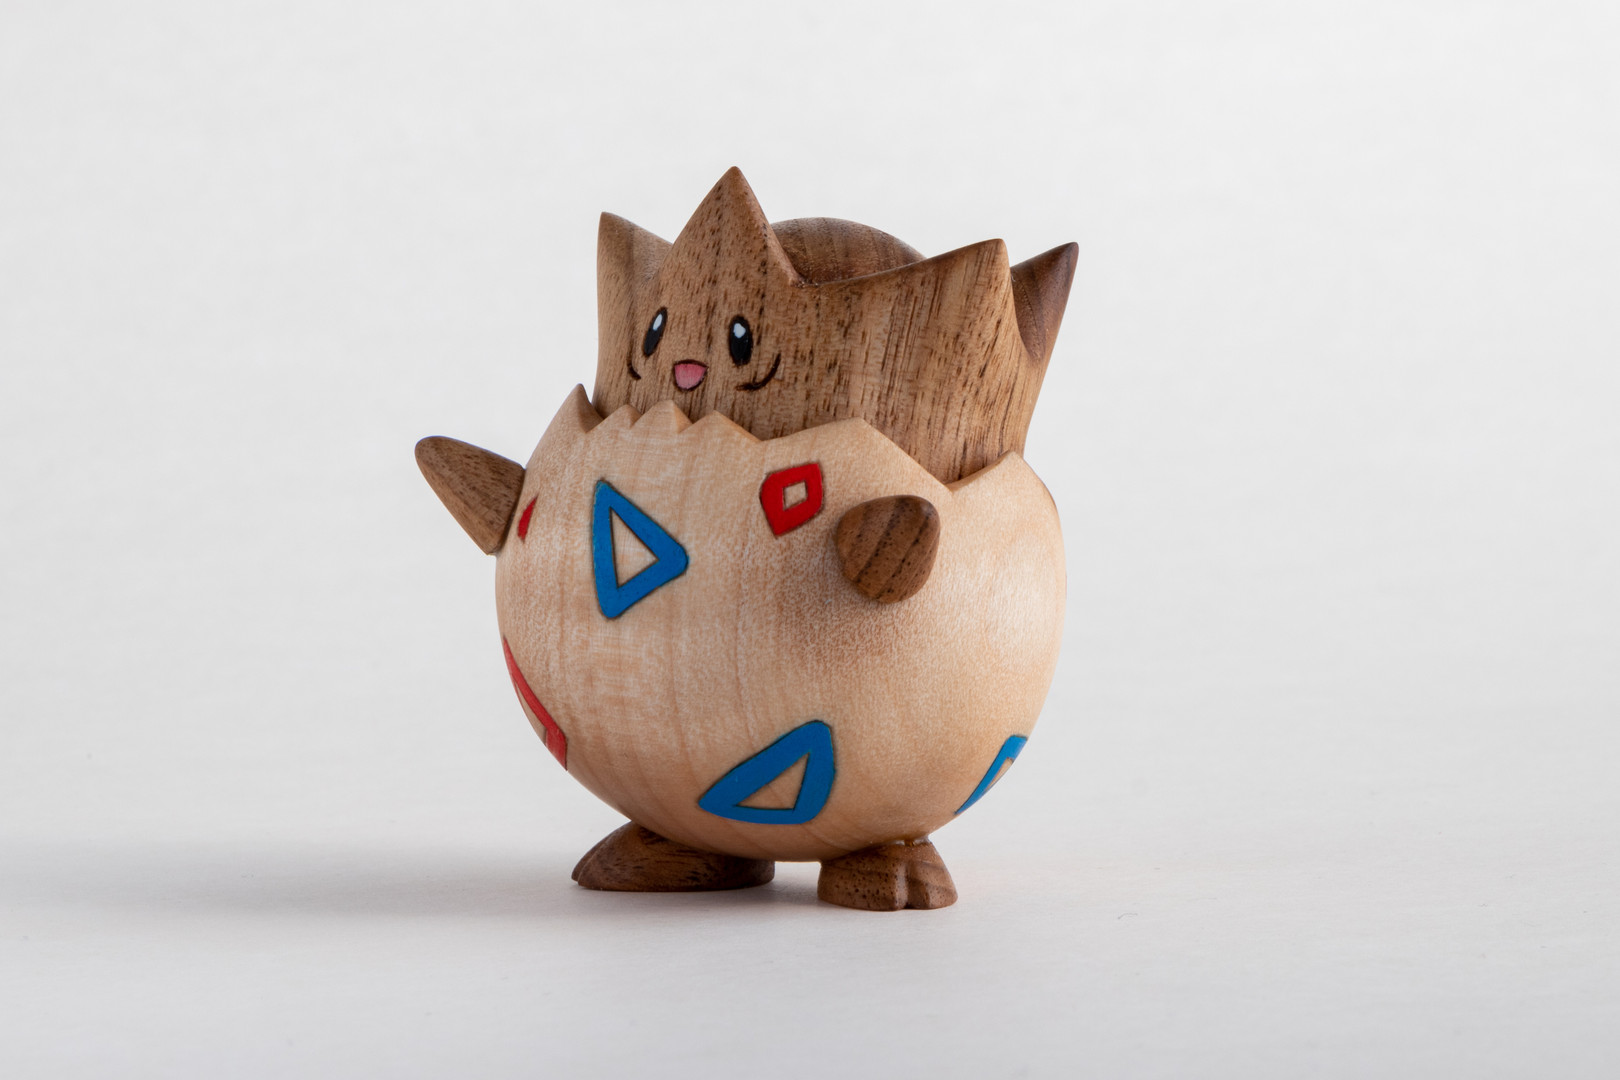 Togepi wood carving handmade butternut and maple pokemon figure